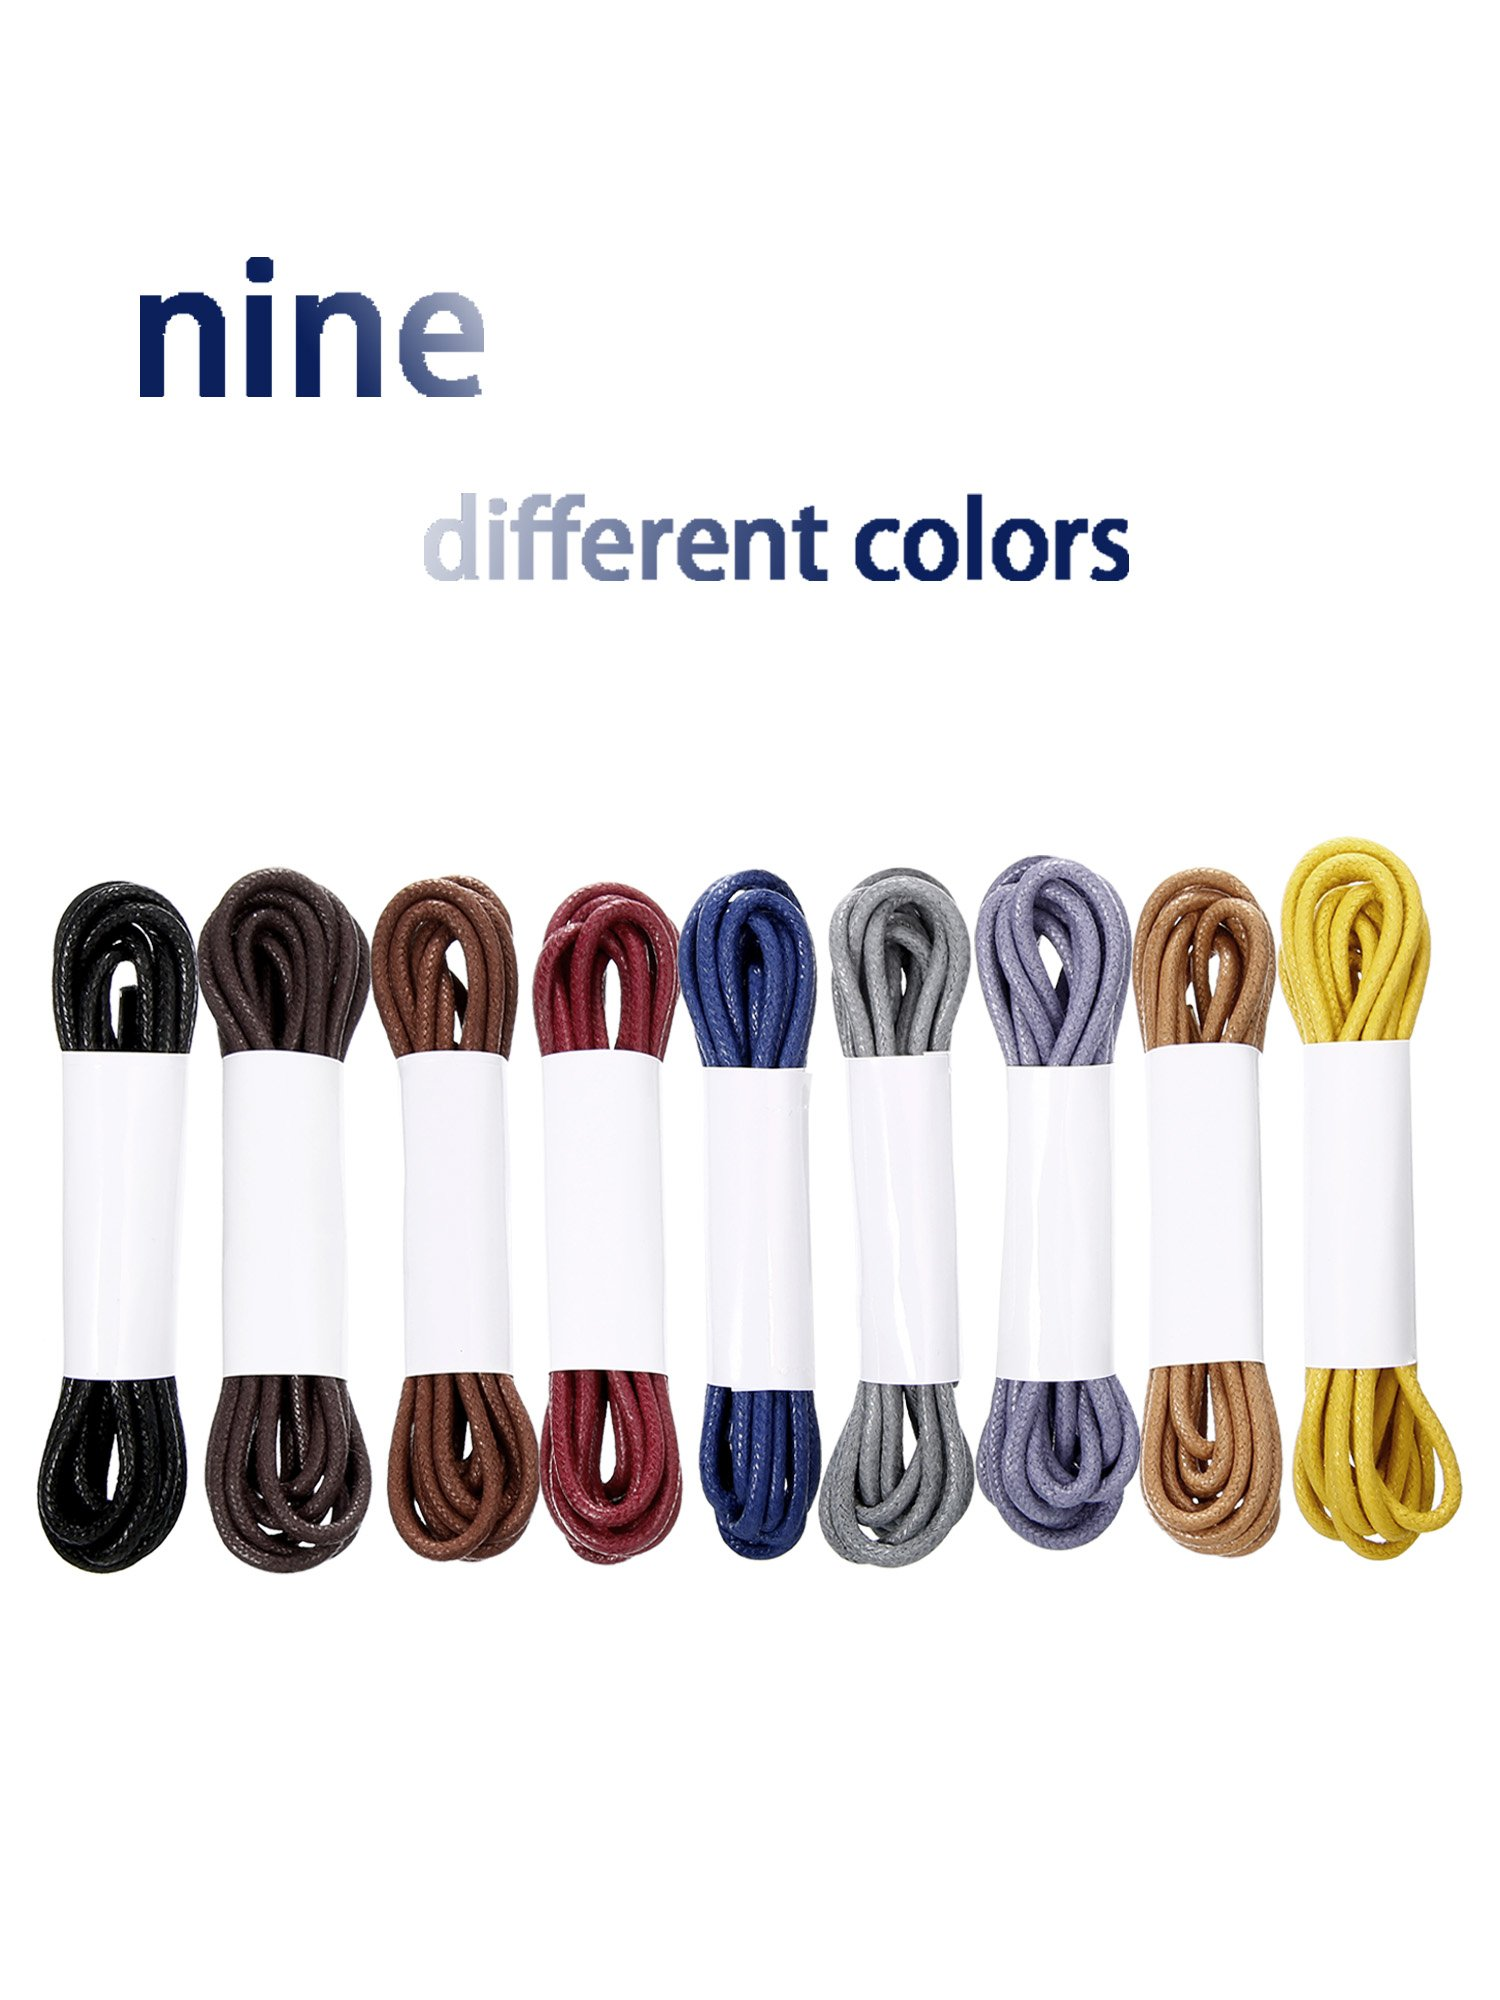 Jovitec Waxed Oxford Shoelaces Cotton Round Waxed Shoe Laces for Dress Shoes, 9 Colors by Jovitec (Image #2)